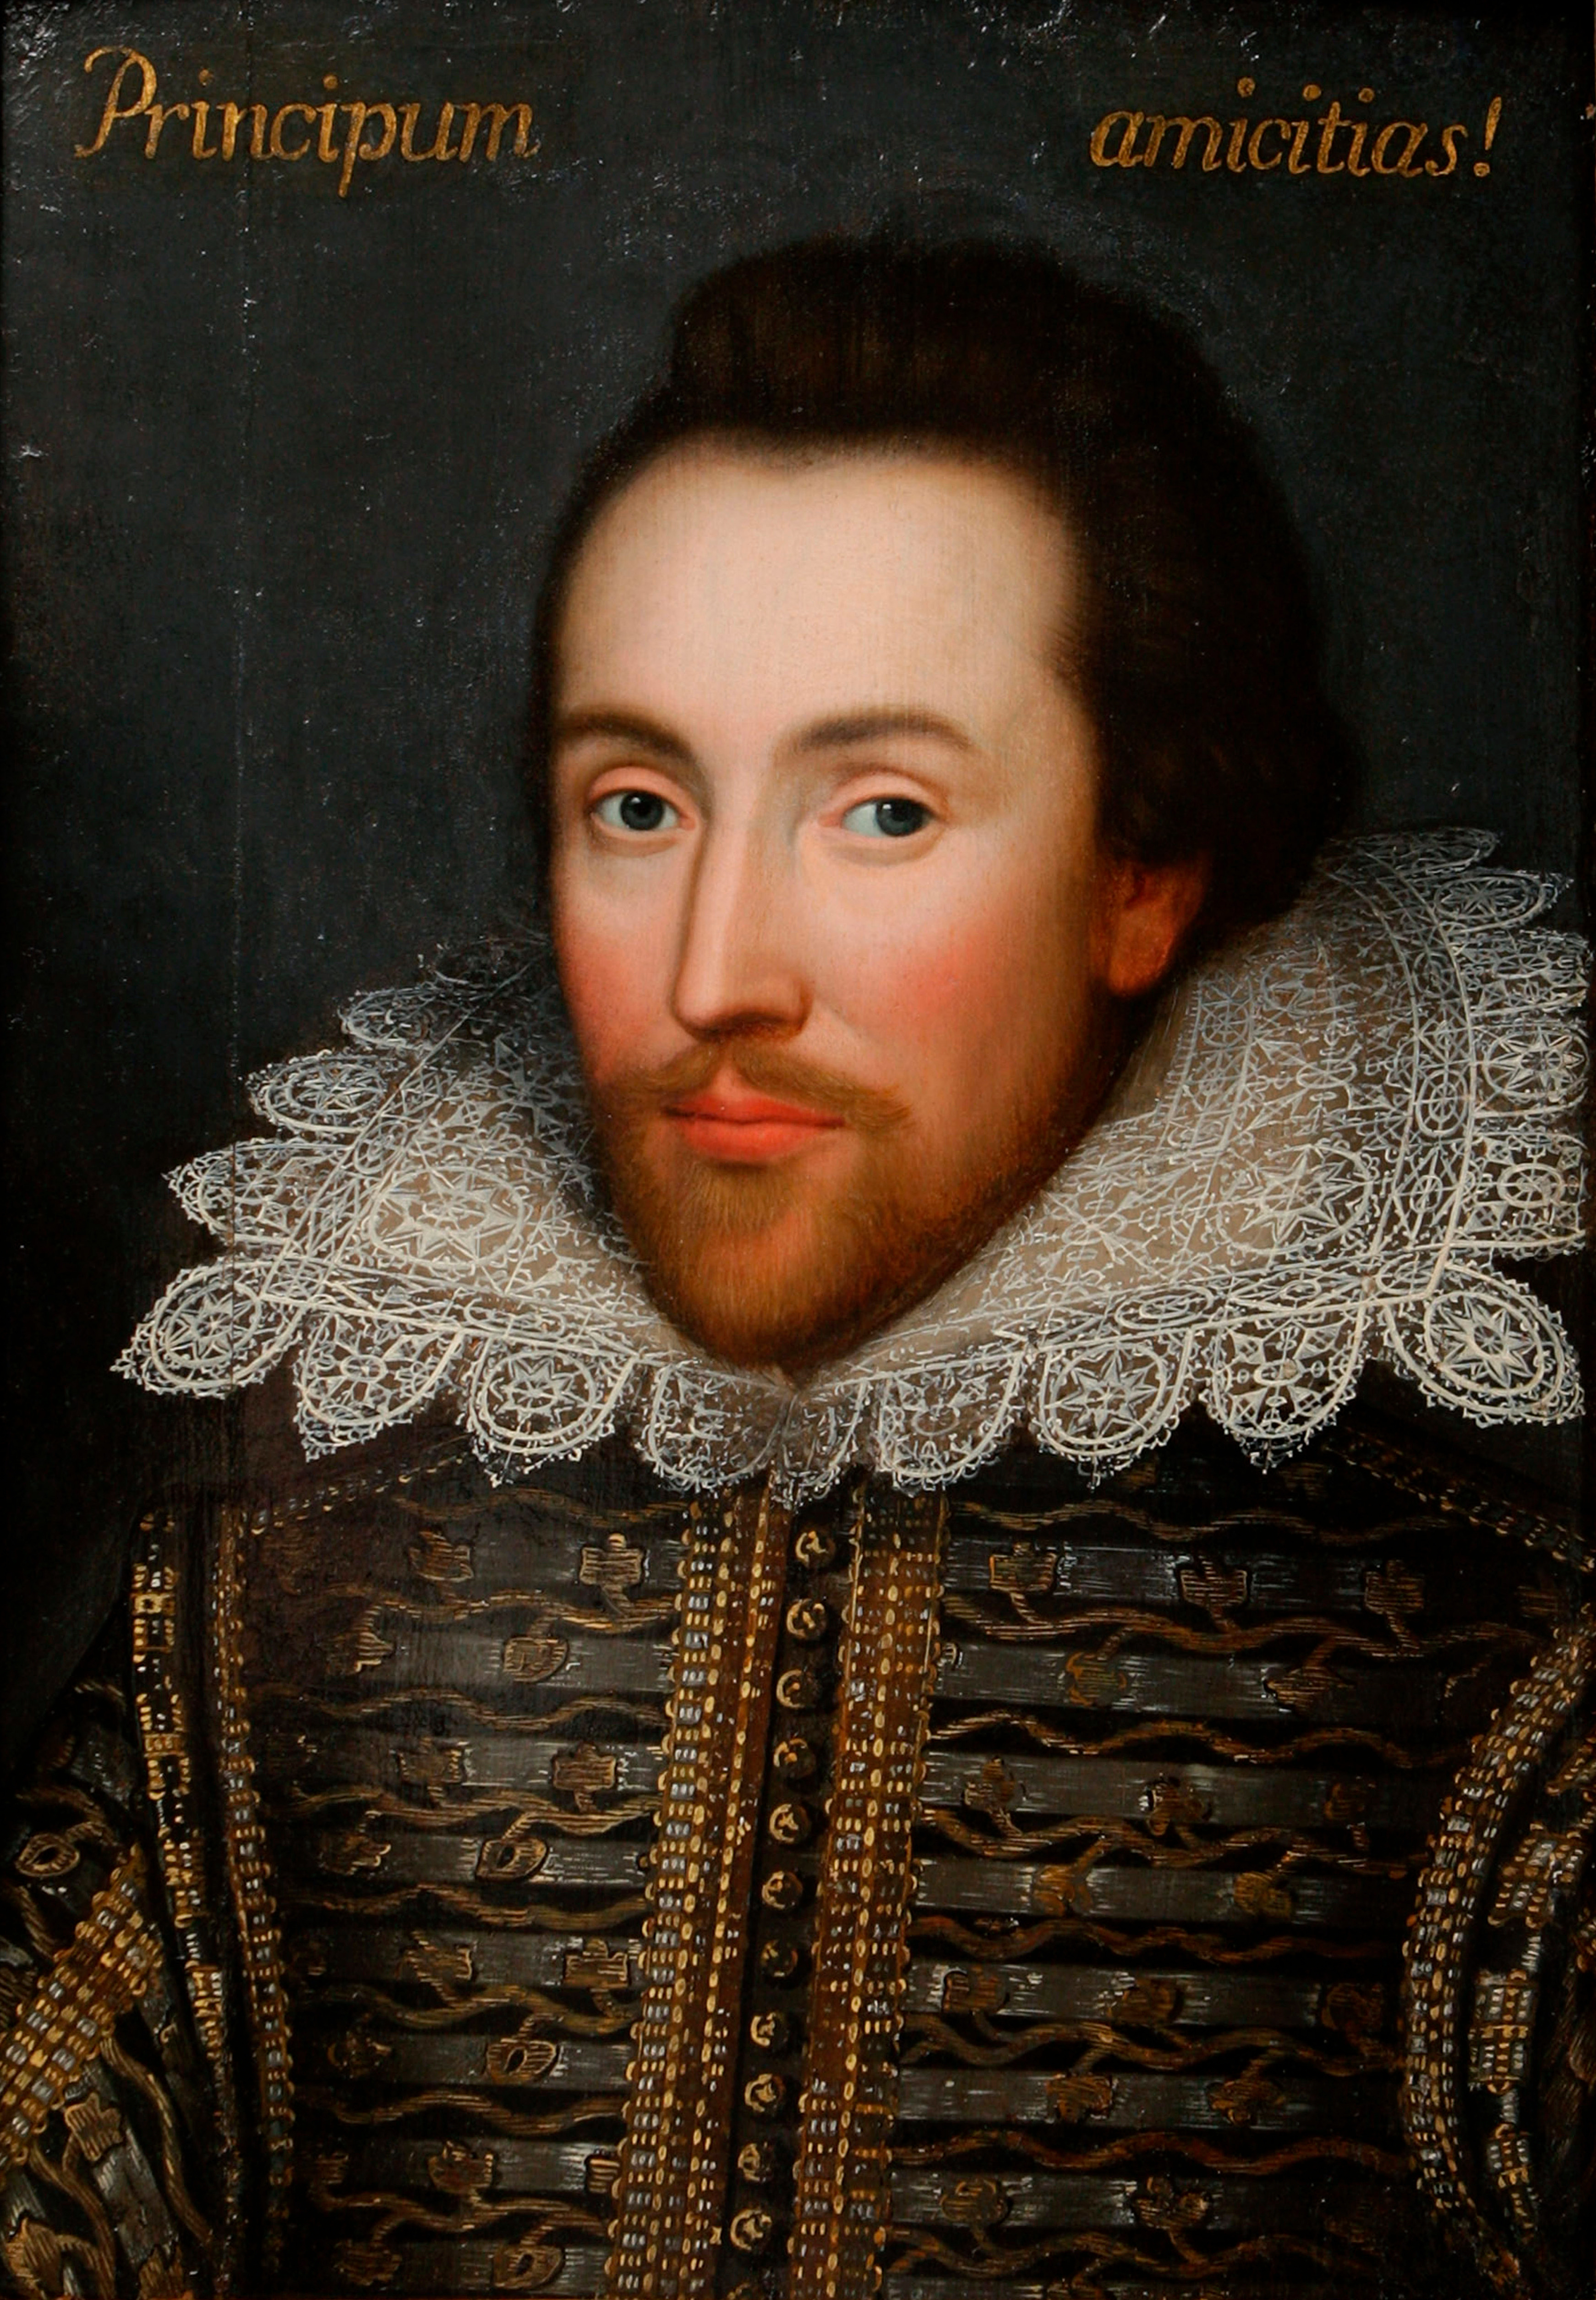 You might have found an interest in poetry while stuck at home, learn how to write a poem like Shakespeare